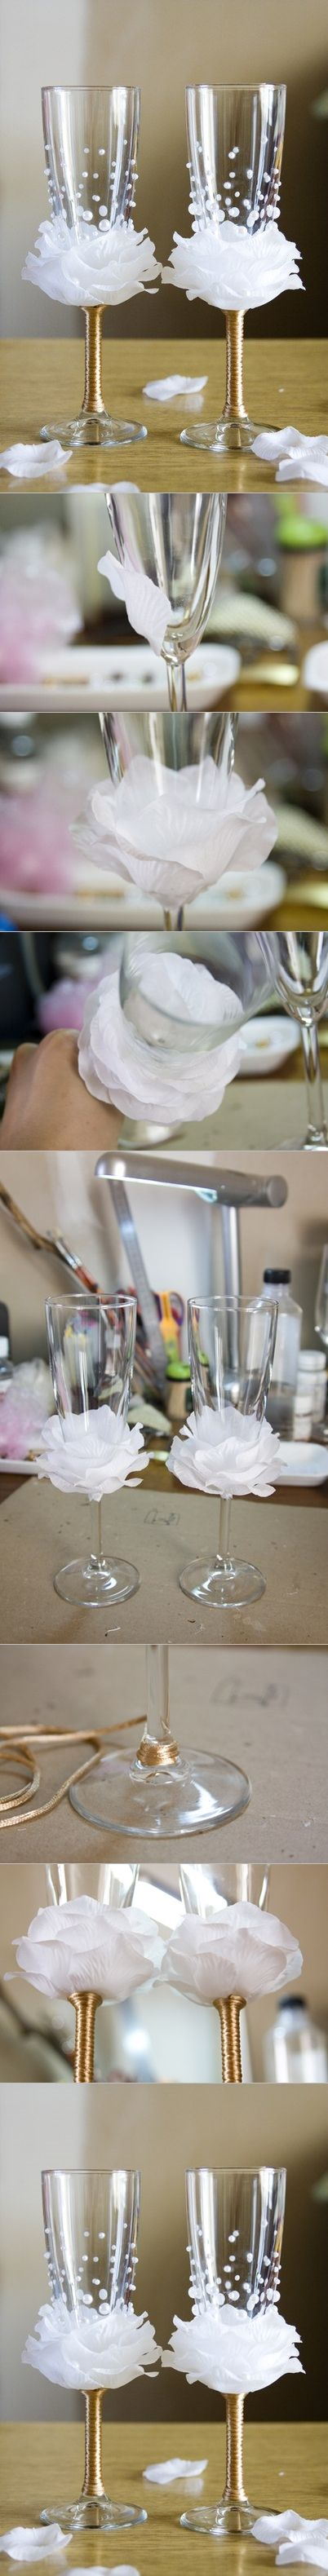 wine-glass-decor-tutorial